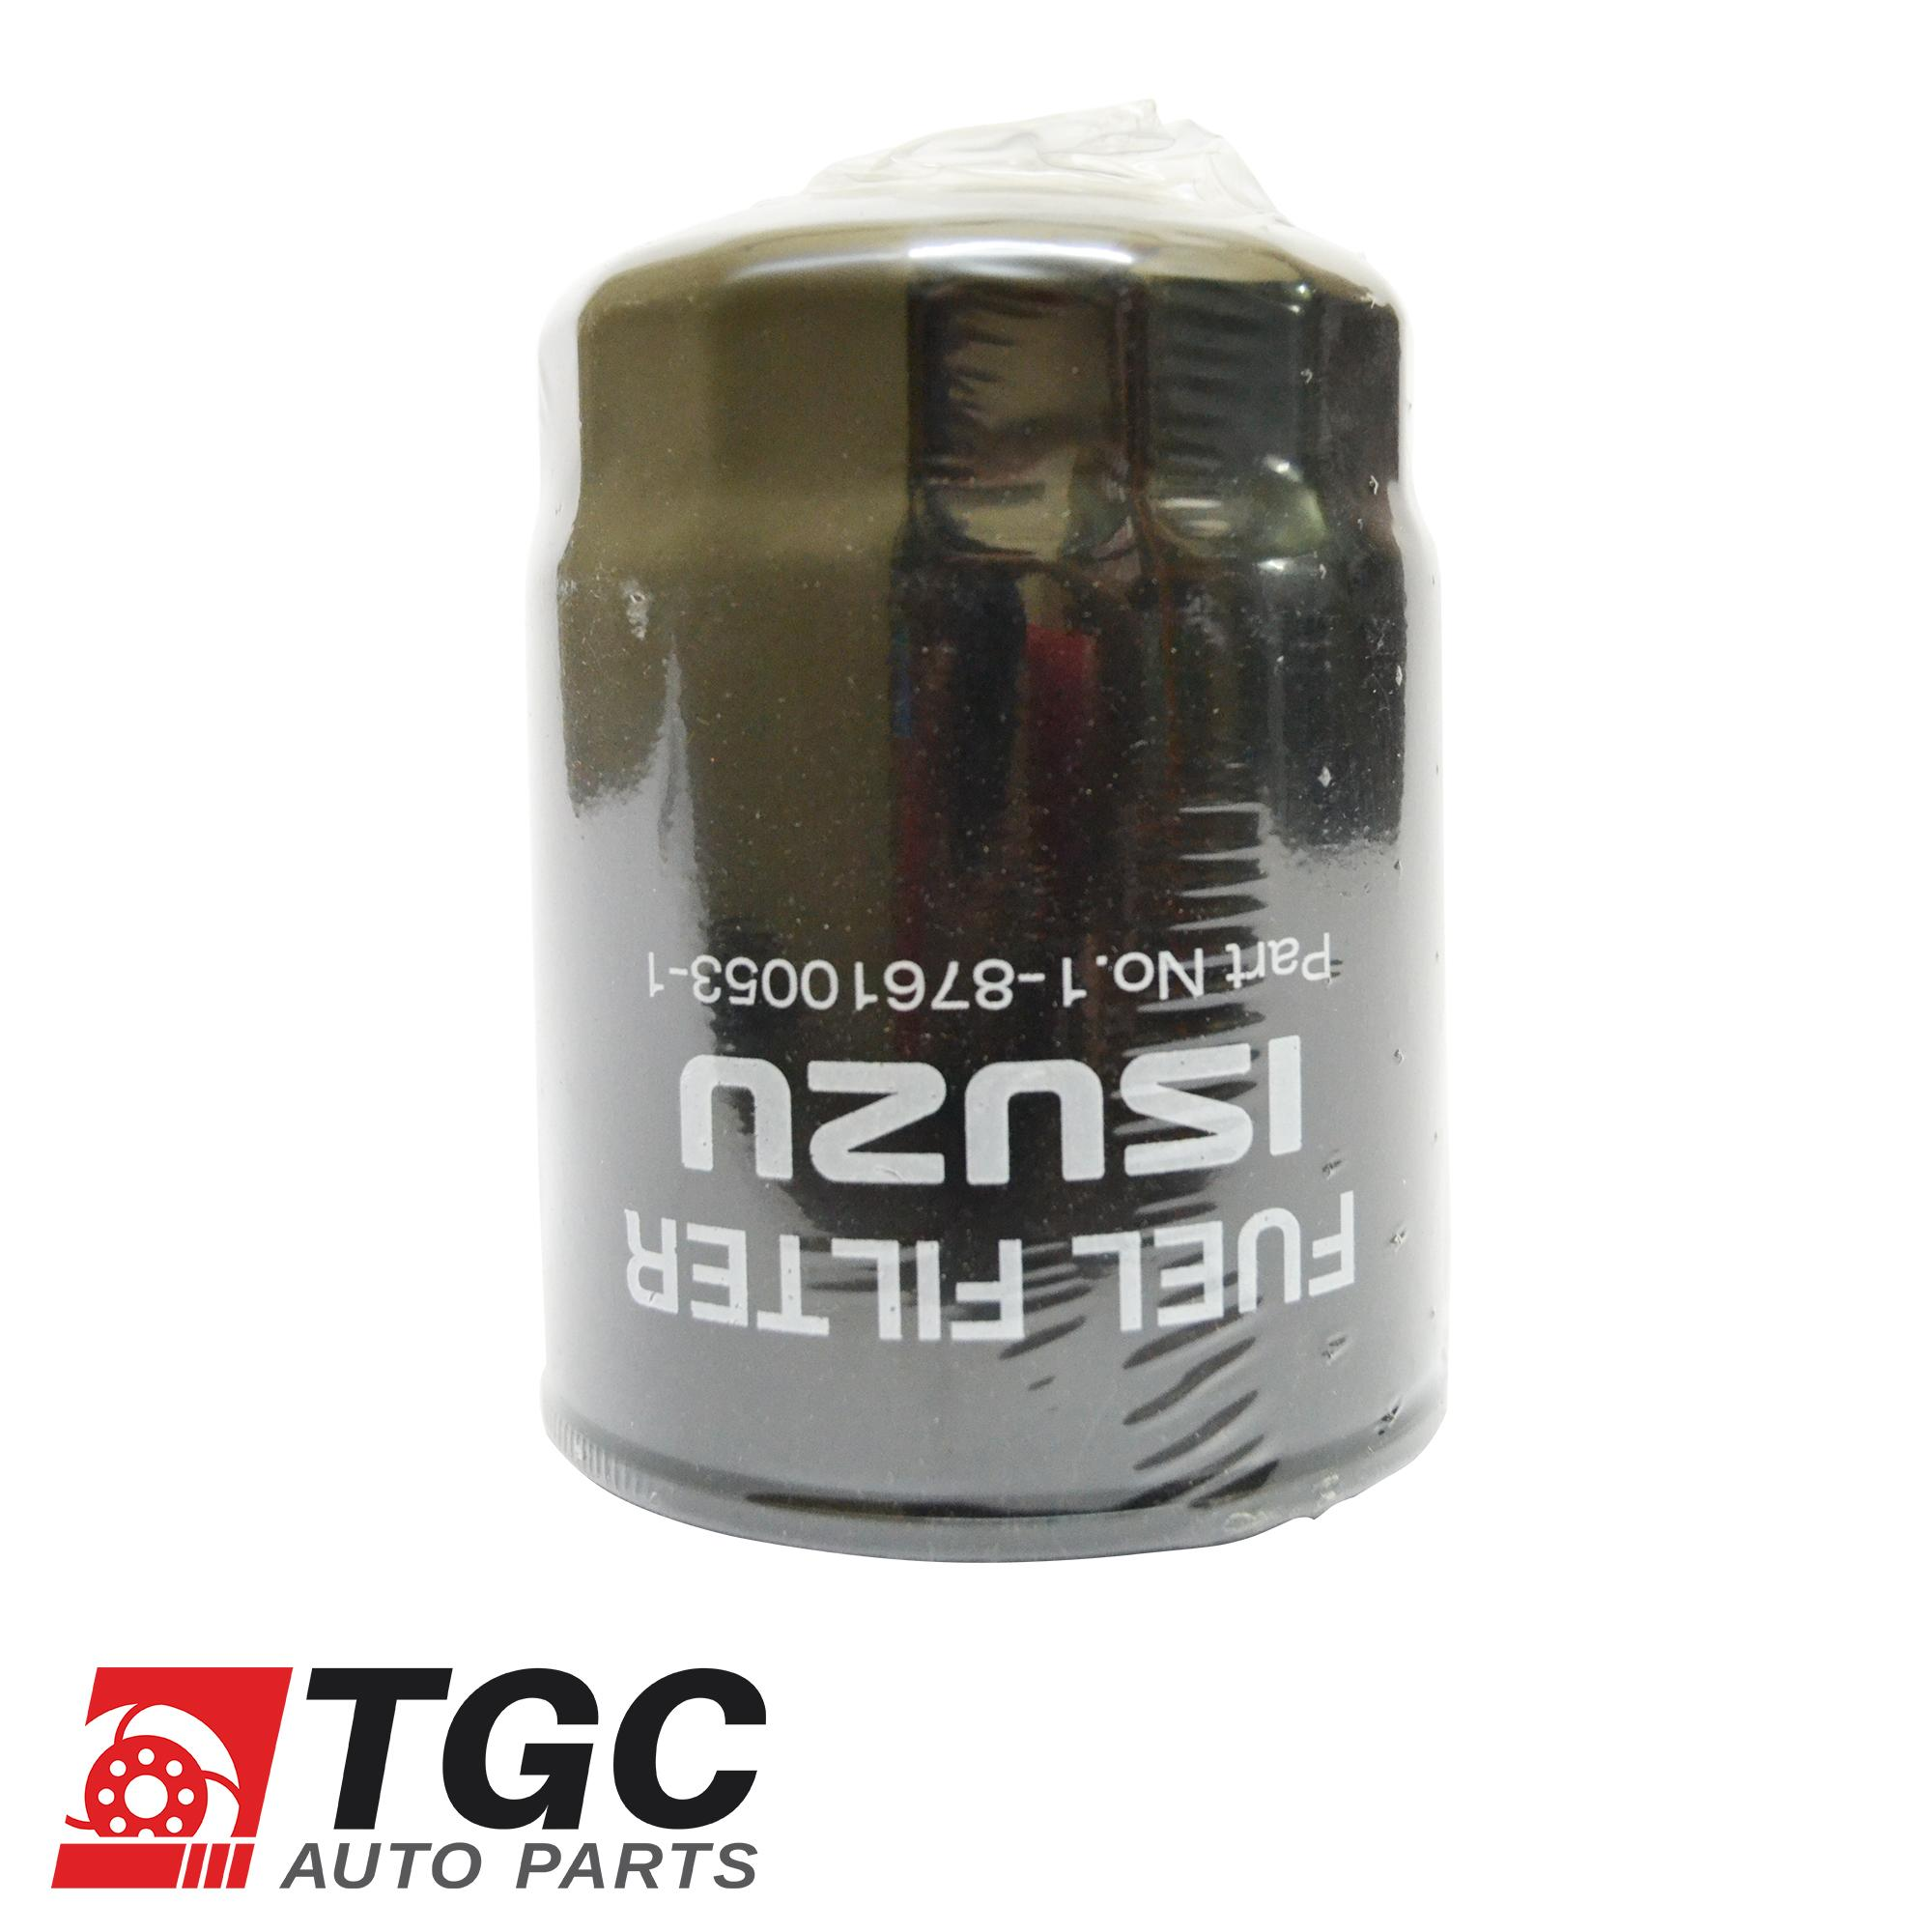 Fuel Filter For Sale Gas Online Brands Prices Reviews In 2011 Kia Sorento Location Isuzu Element 1132400791